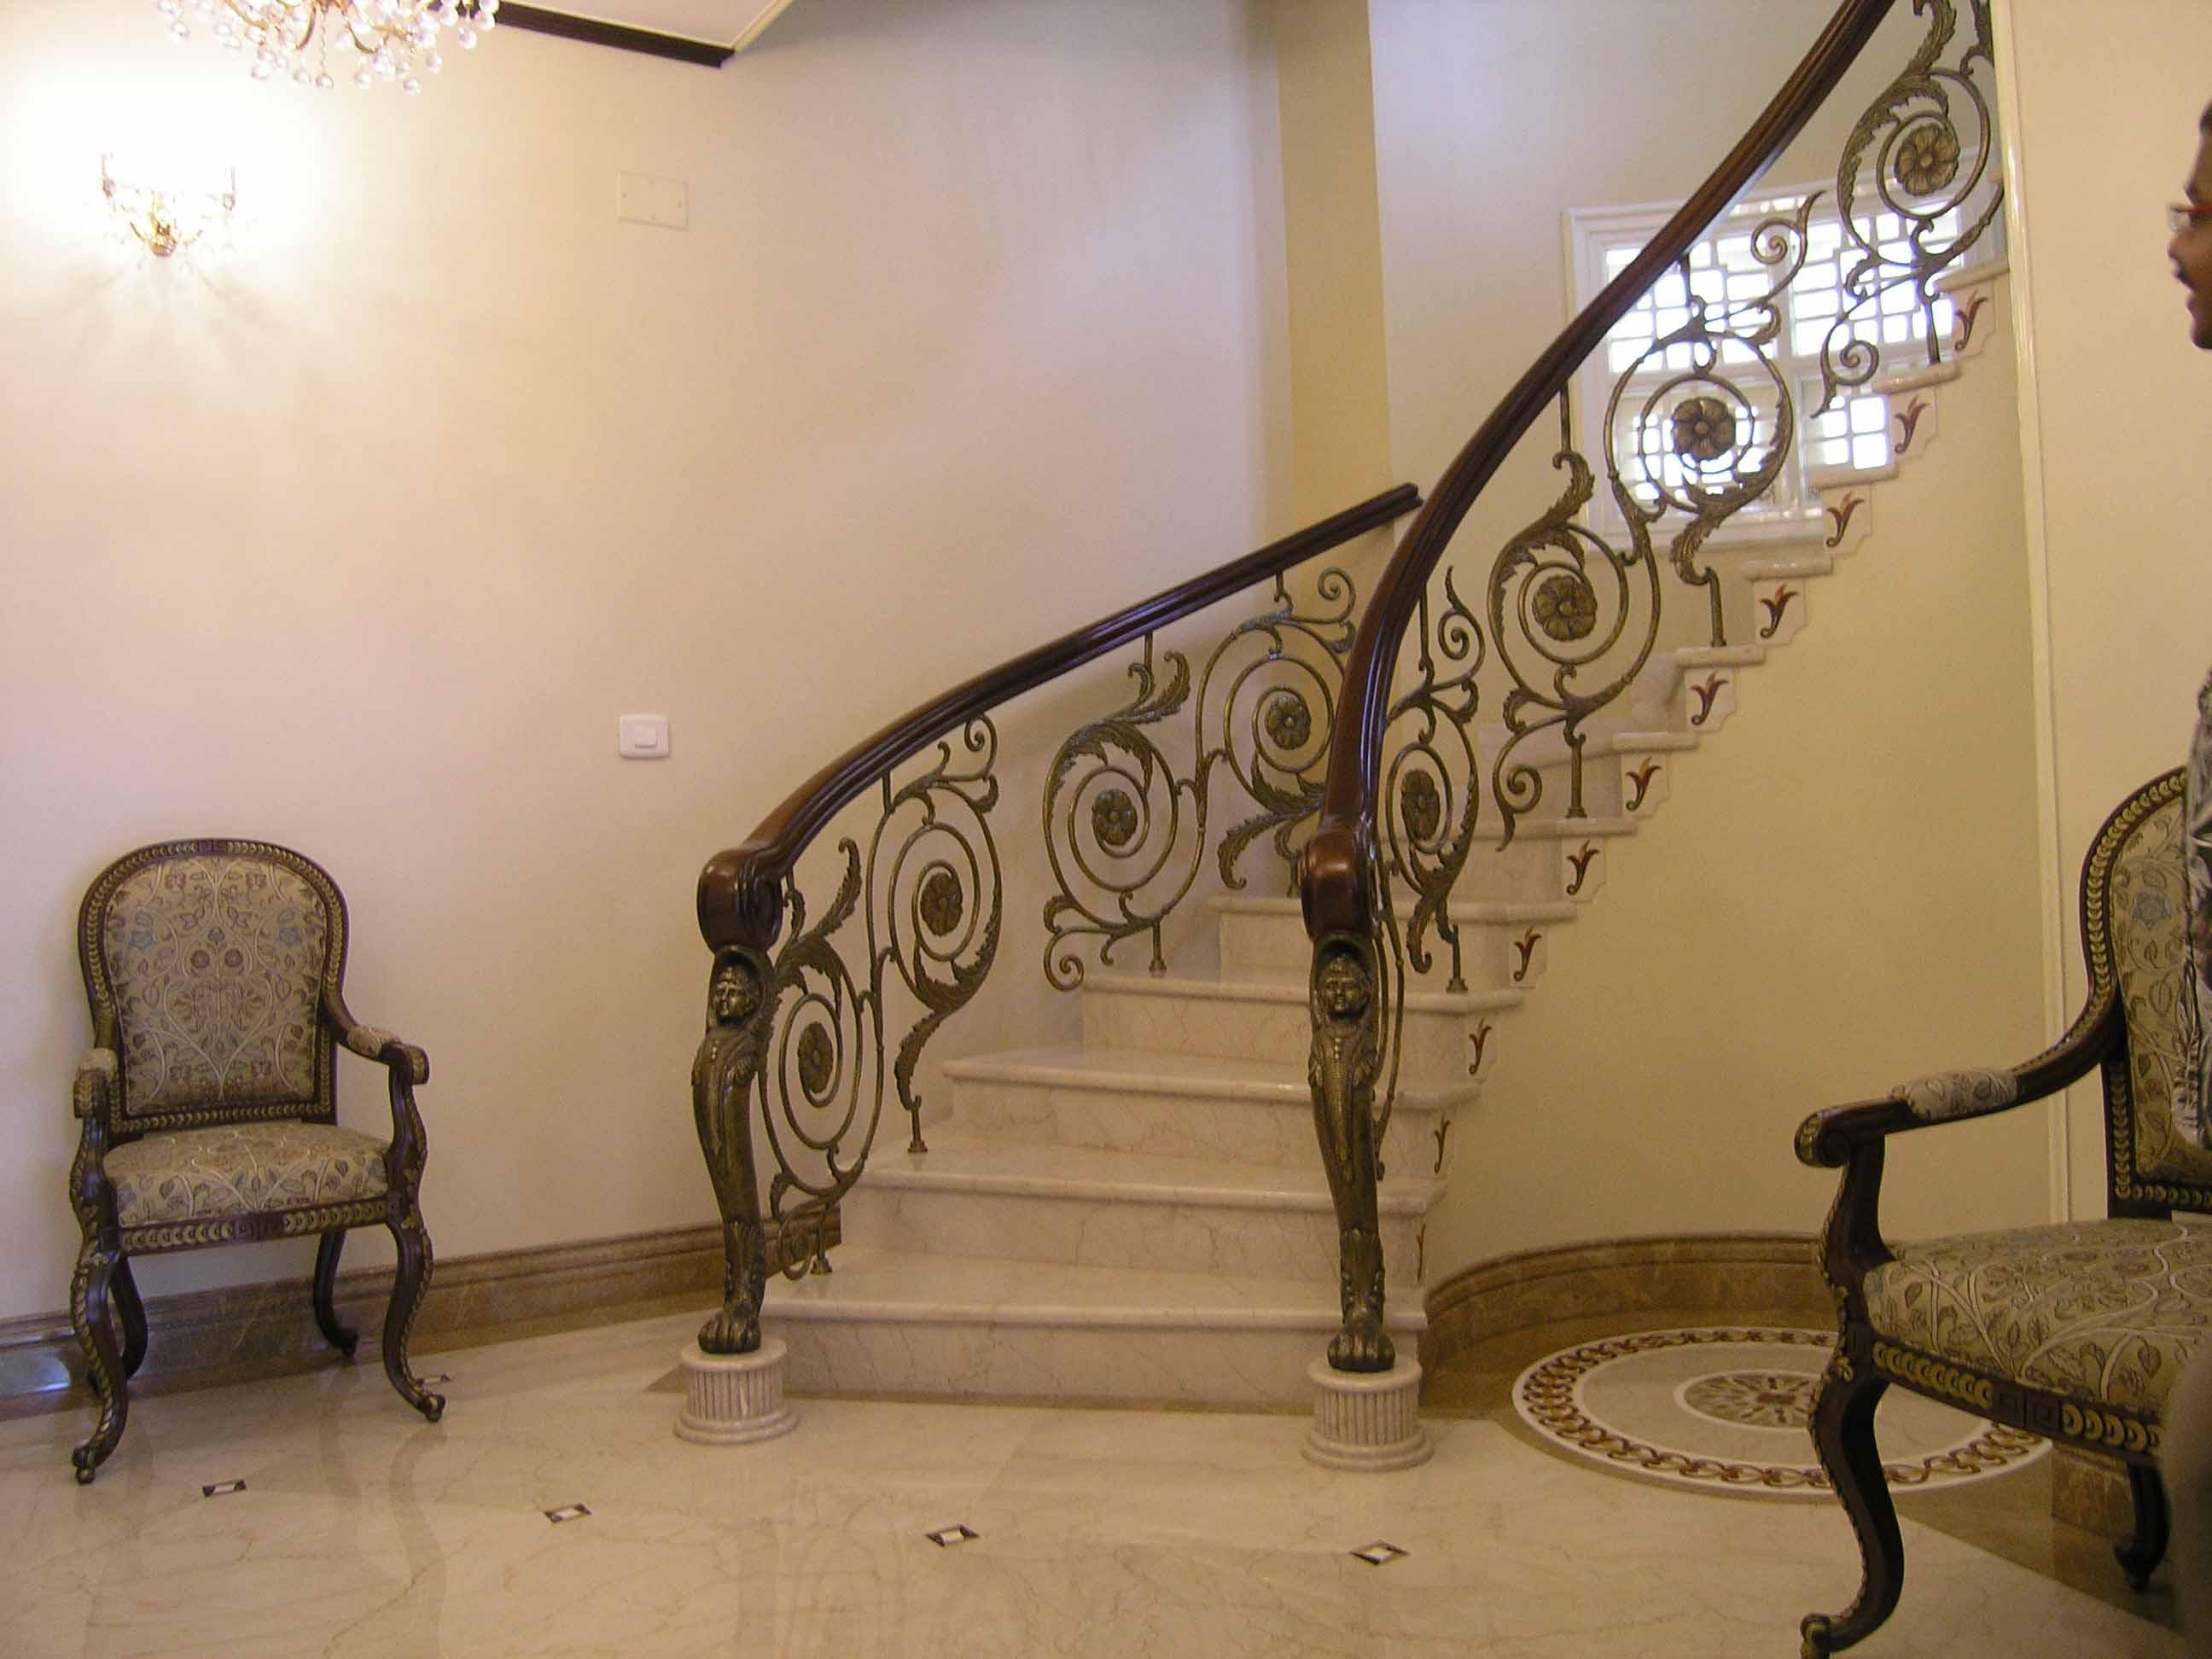 Stairs design with railing design - GharExpert